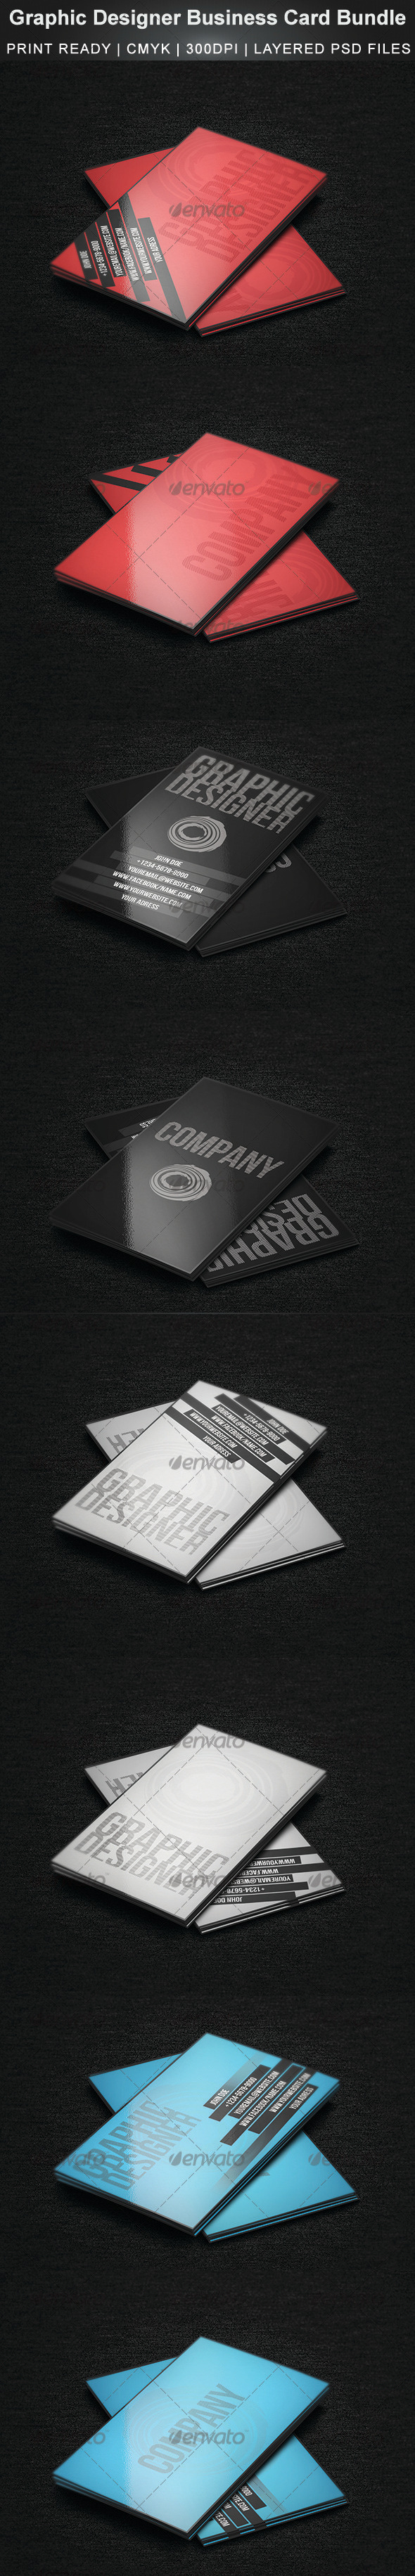 Graphic Designer Business Card Bundle - Creative Business Cards